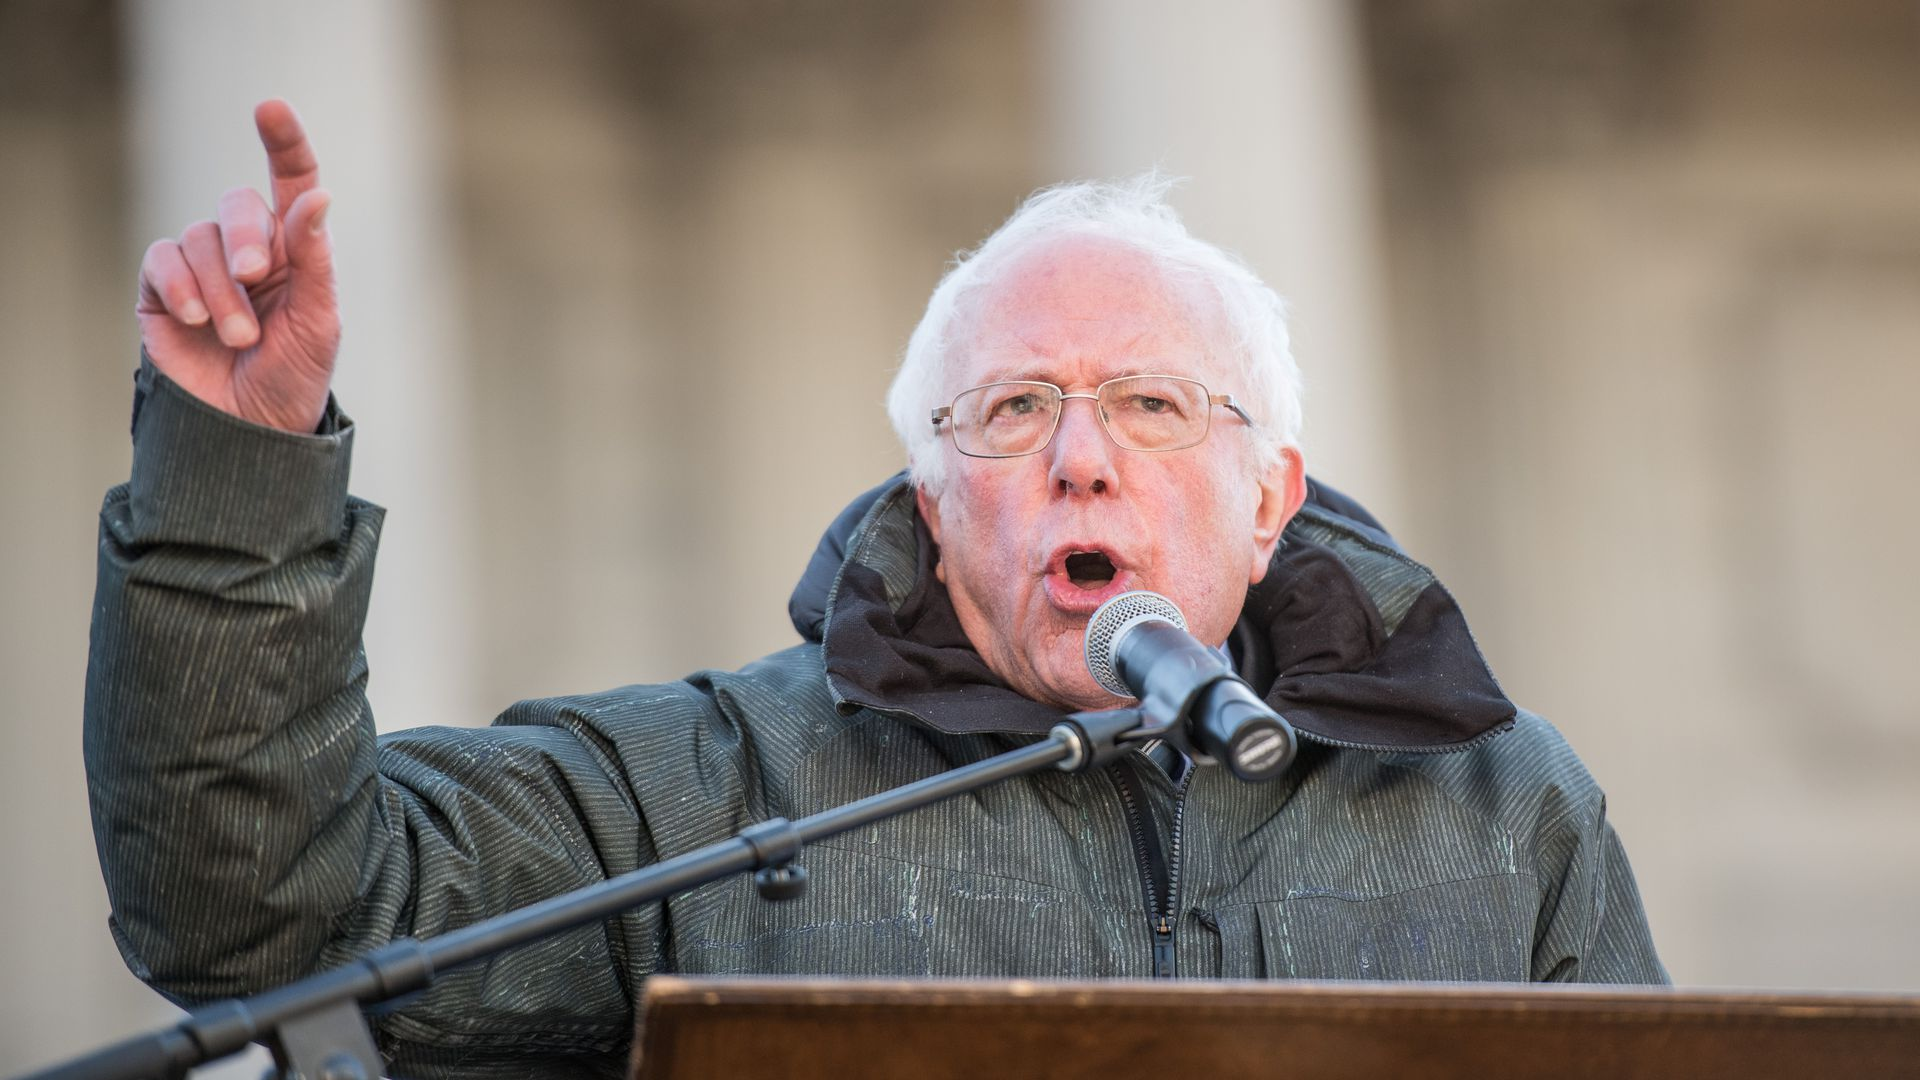 Bernie Sanders on the issues, in under 500 words